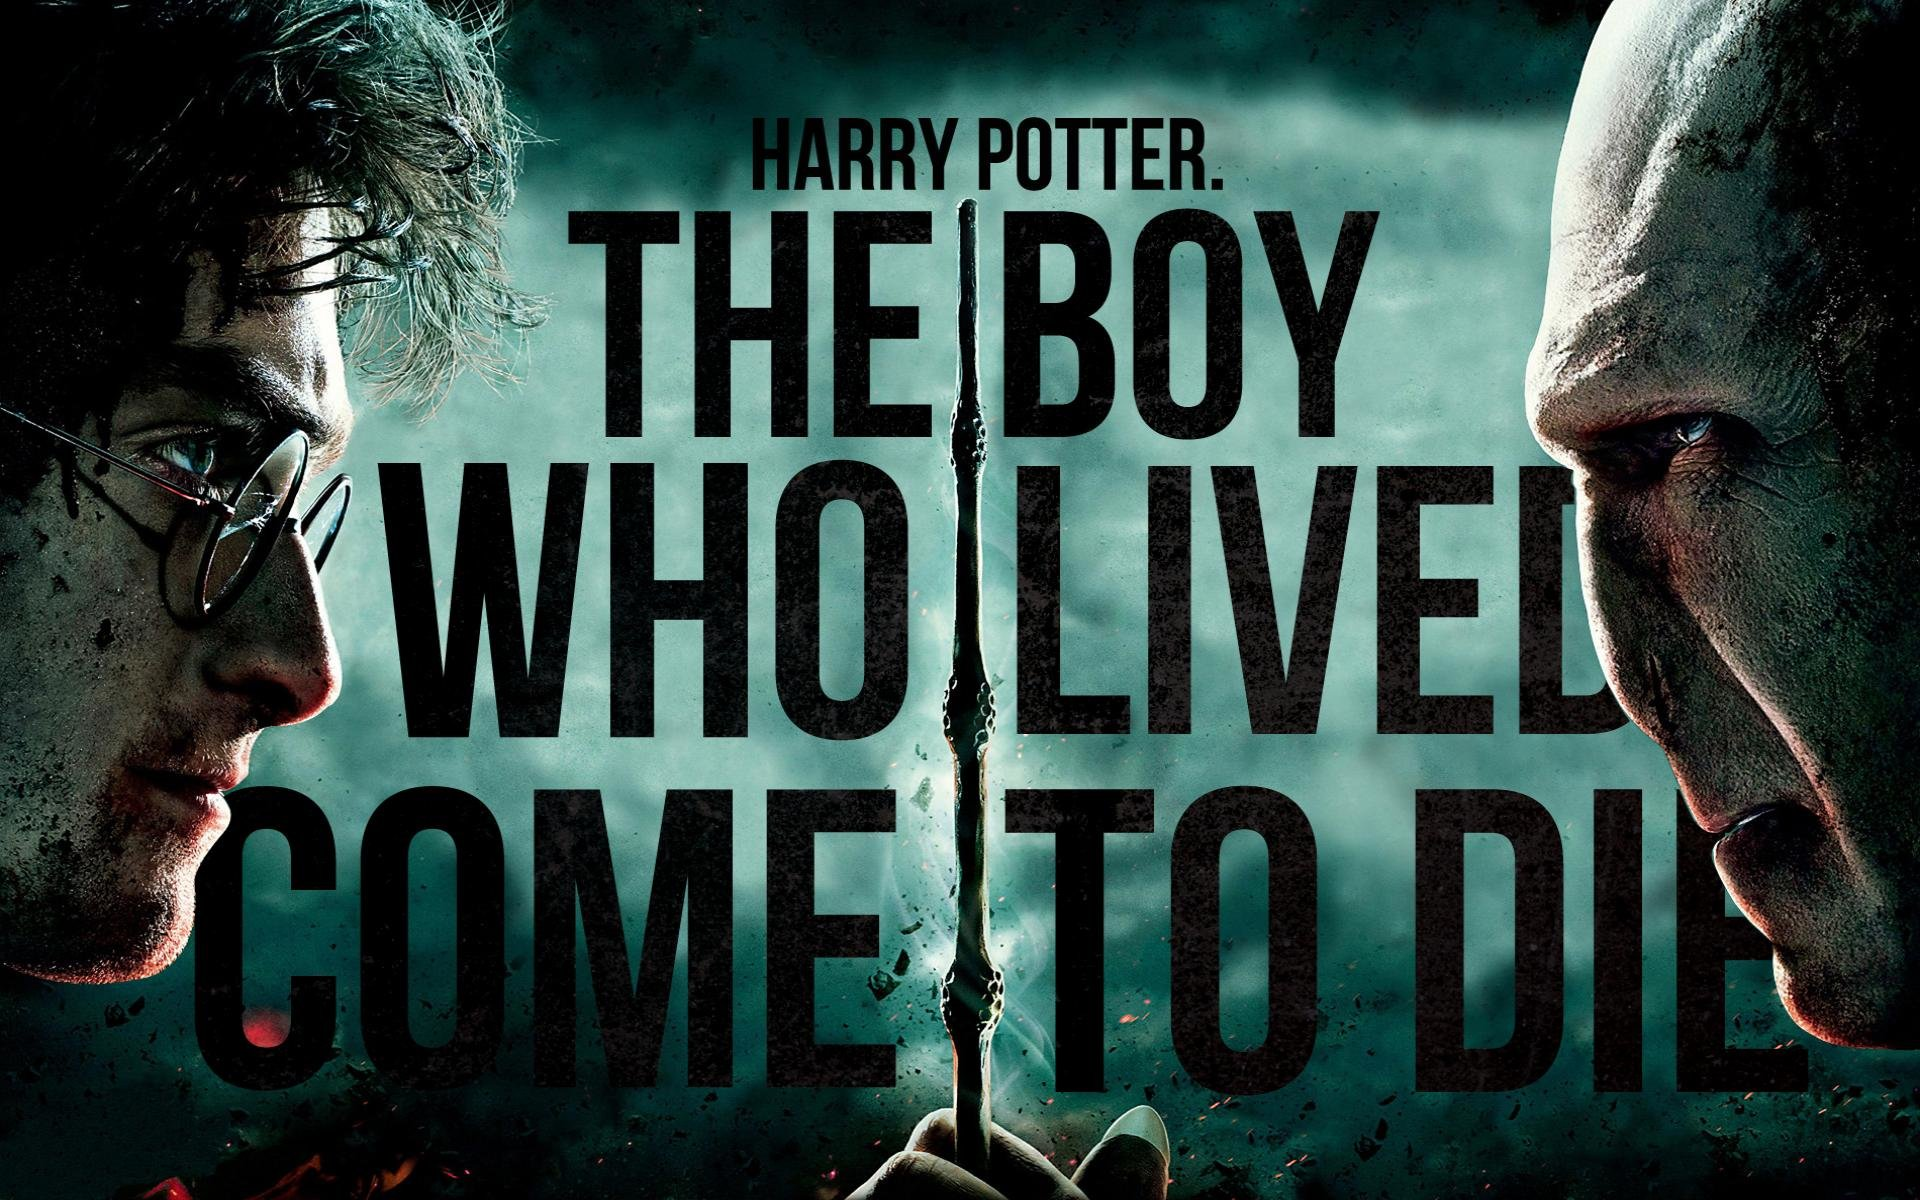 Harry Potter And The Deathly Hallows Part 2 Wallpapers Hd For